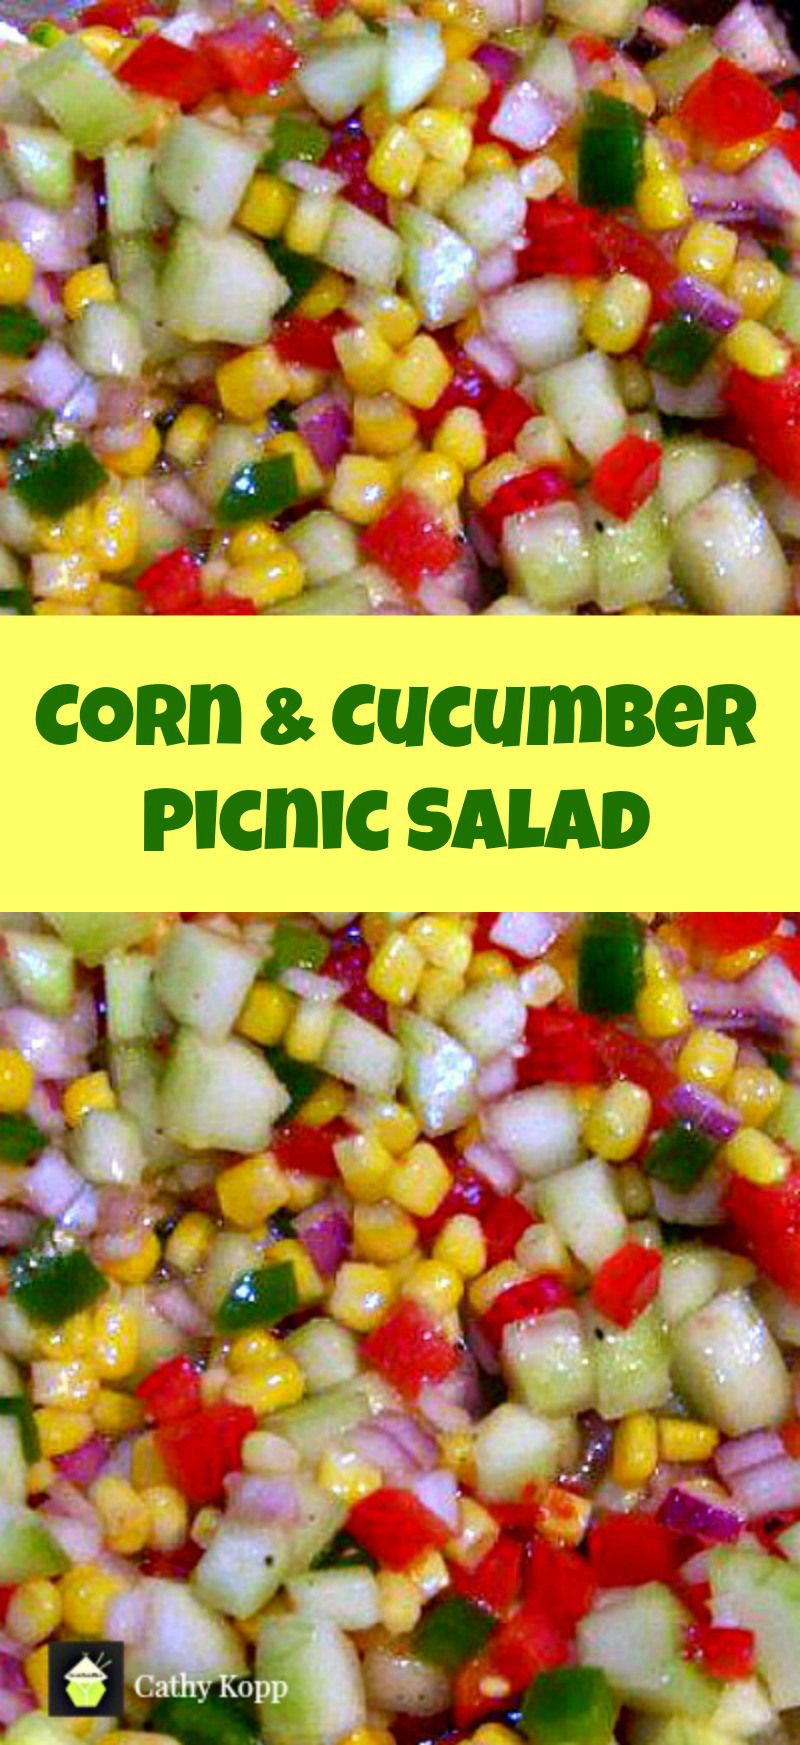 Corn and Cucumber Picnic Salad. A very simple yet great tasting salad and perfect for the holidays! | Lovefoodies.com #familypicnicfoods